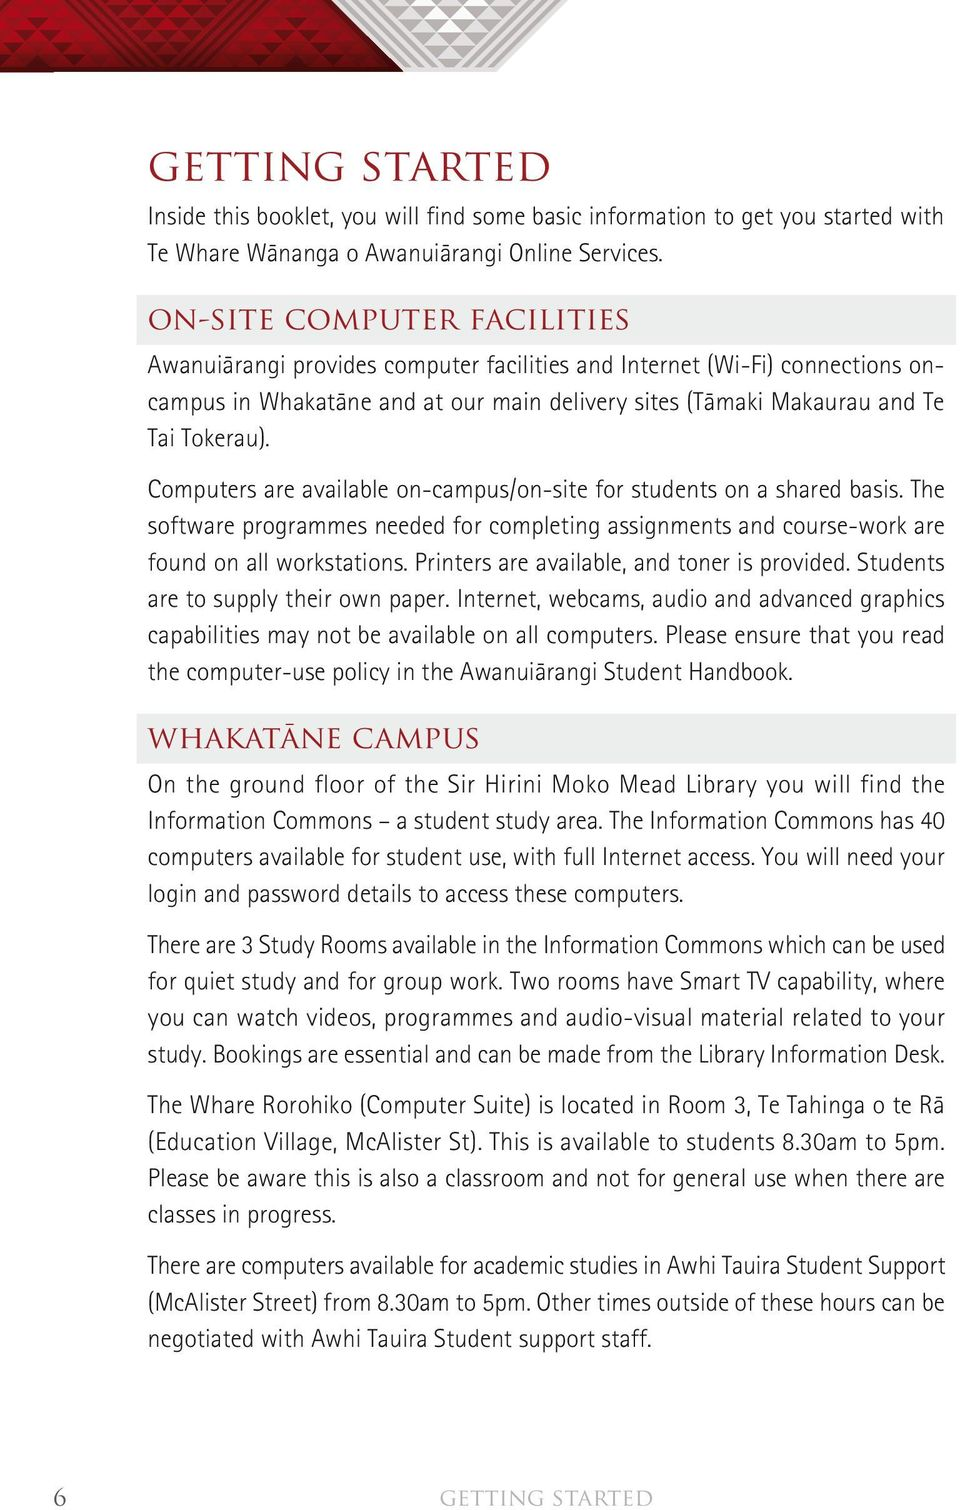 Computers are available on-campus/on-site for students on a shared basis. The software programmes needed for completing assignments and course-work are found on all workstations.